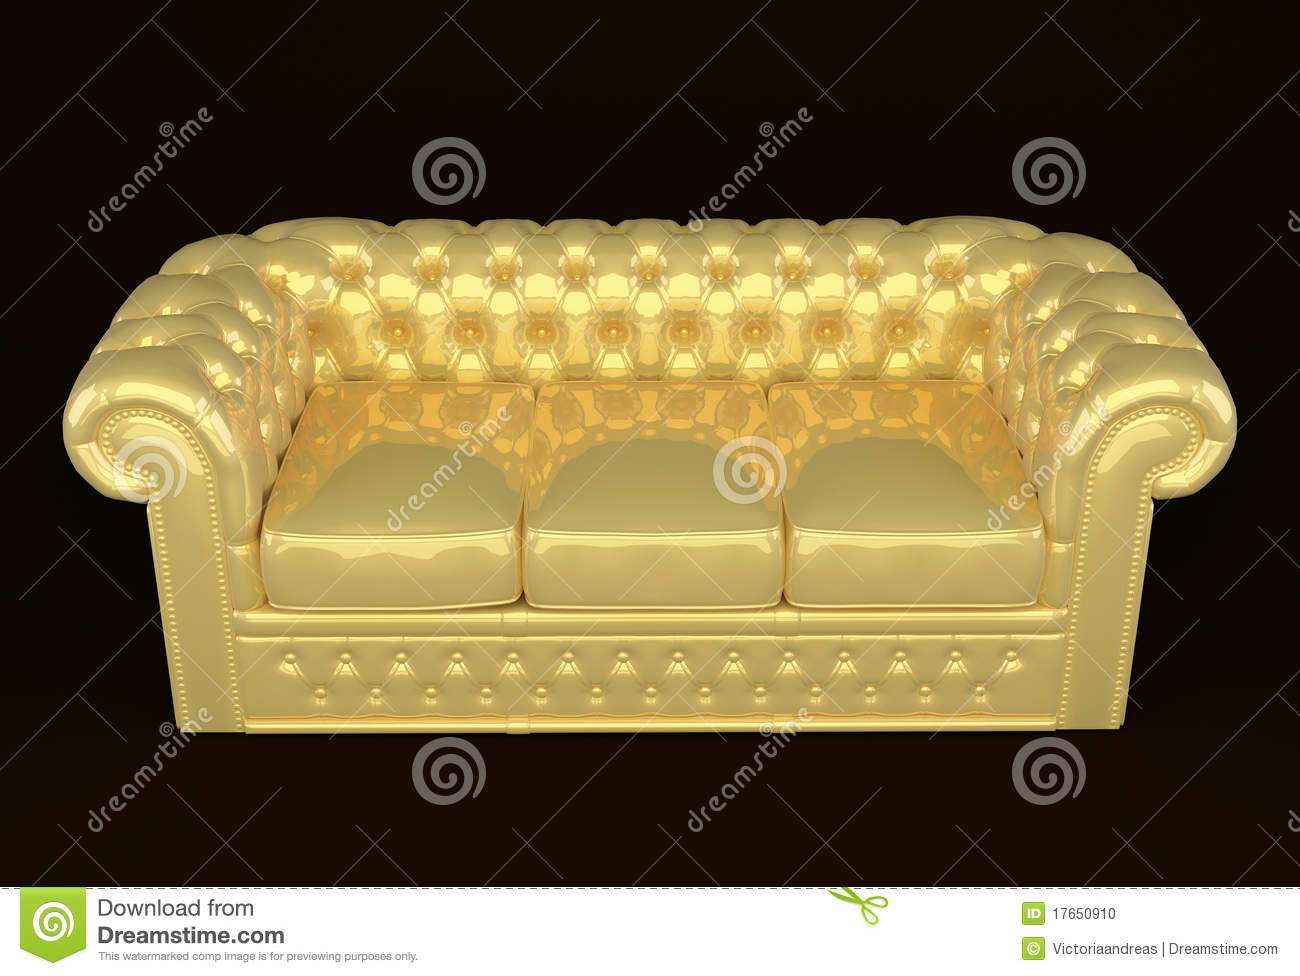 Luxury Couch Luxury Sofa With Golden Leather Royalty Free Stock Photos Image